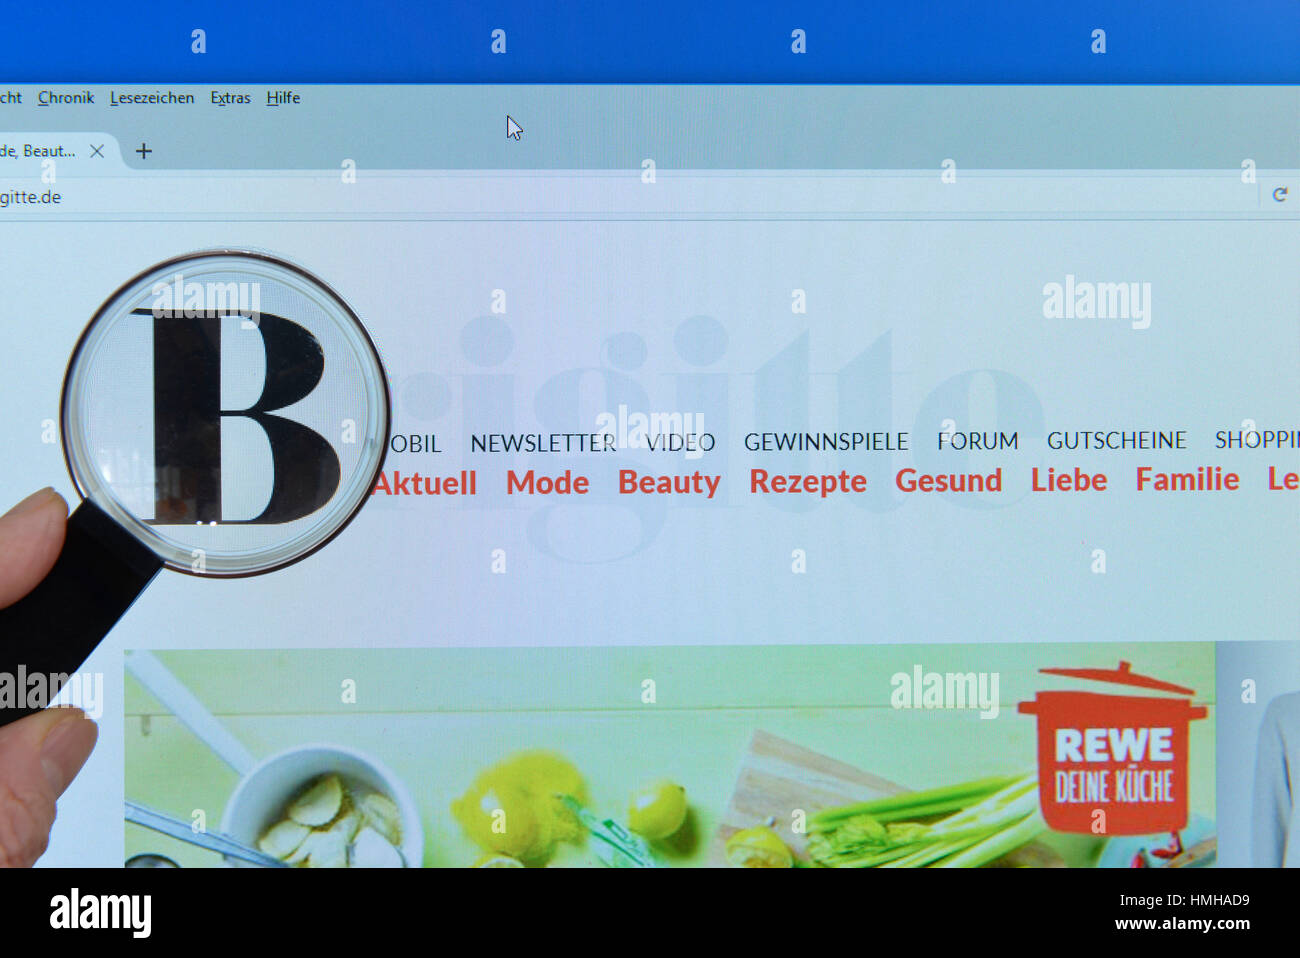 Brigitte Gewinnspiel Brigitta High Resolution Stock Photography And Images - Alamy